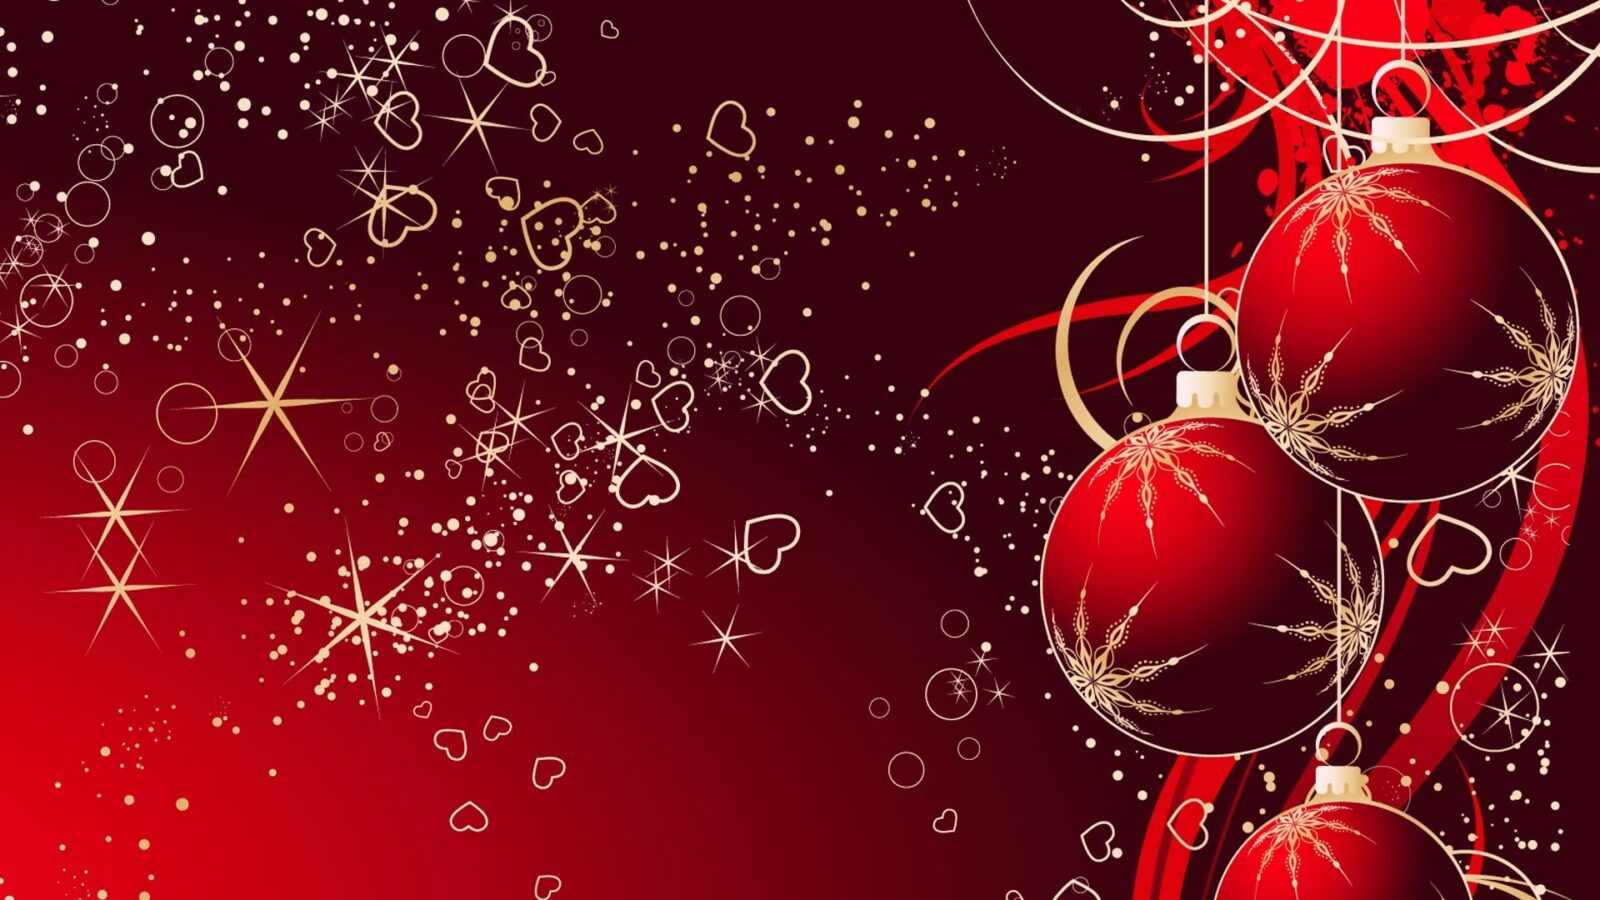 67+ Christmas Wallpapers HD Free Download